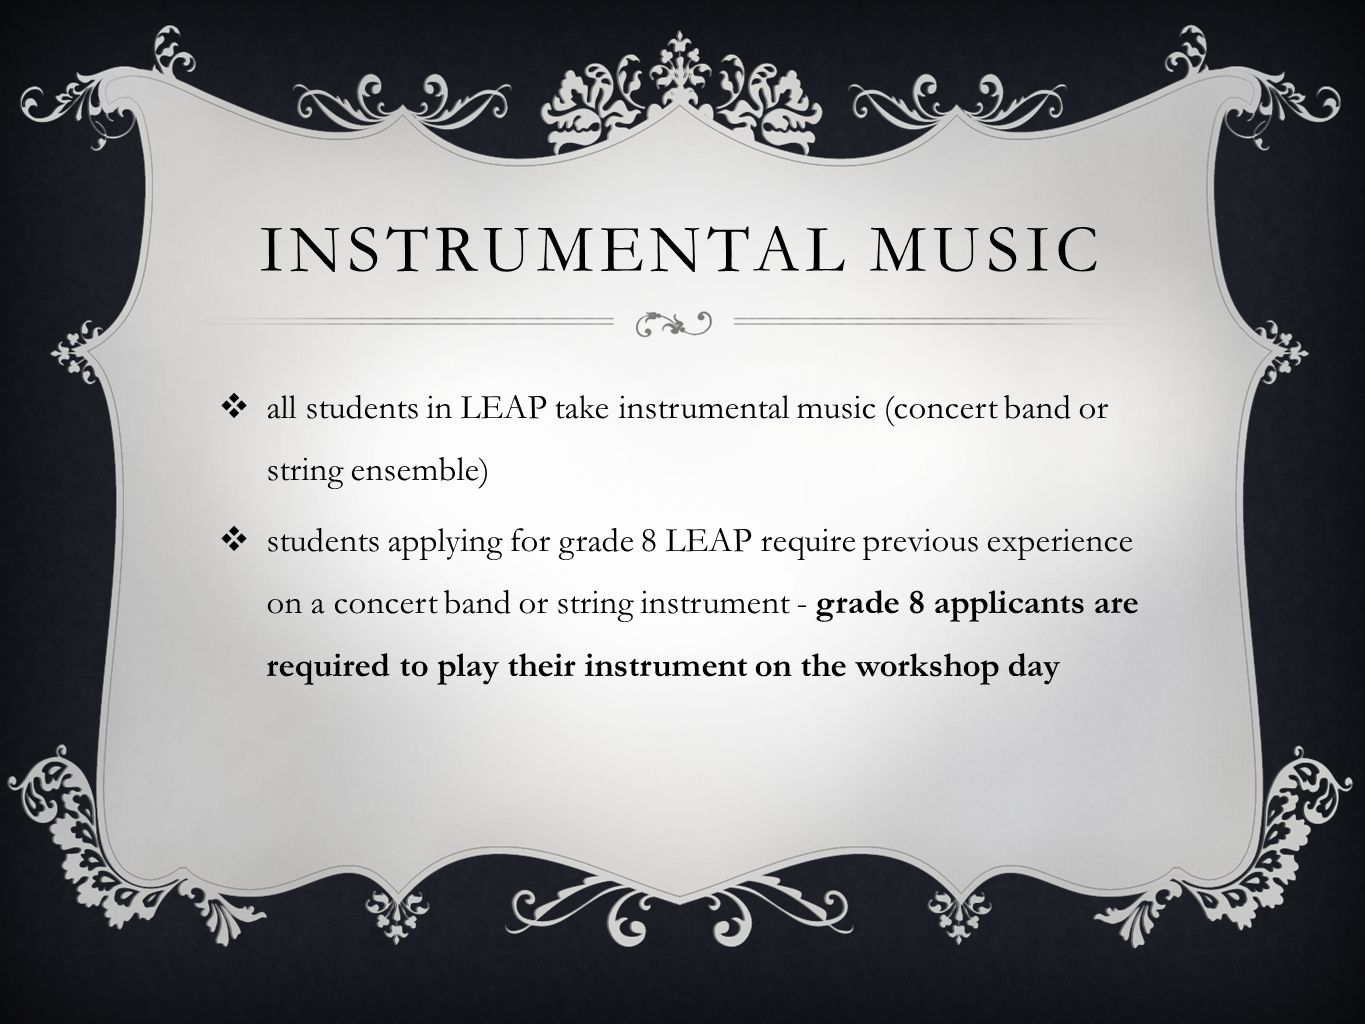 Instrumental music all students in LEAP take instrumental music (concert band or string ensemble)